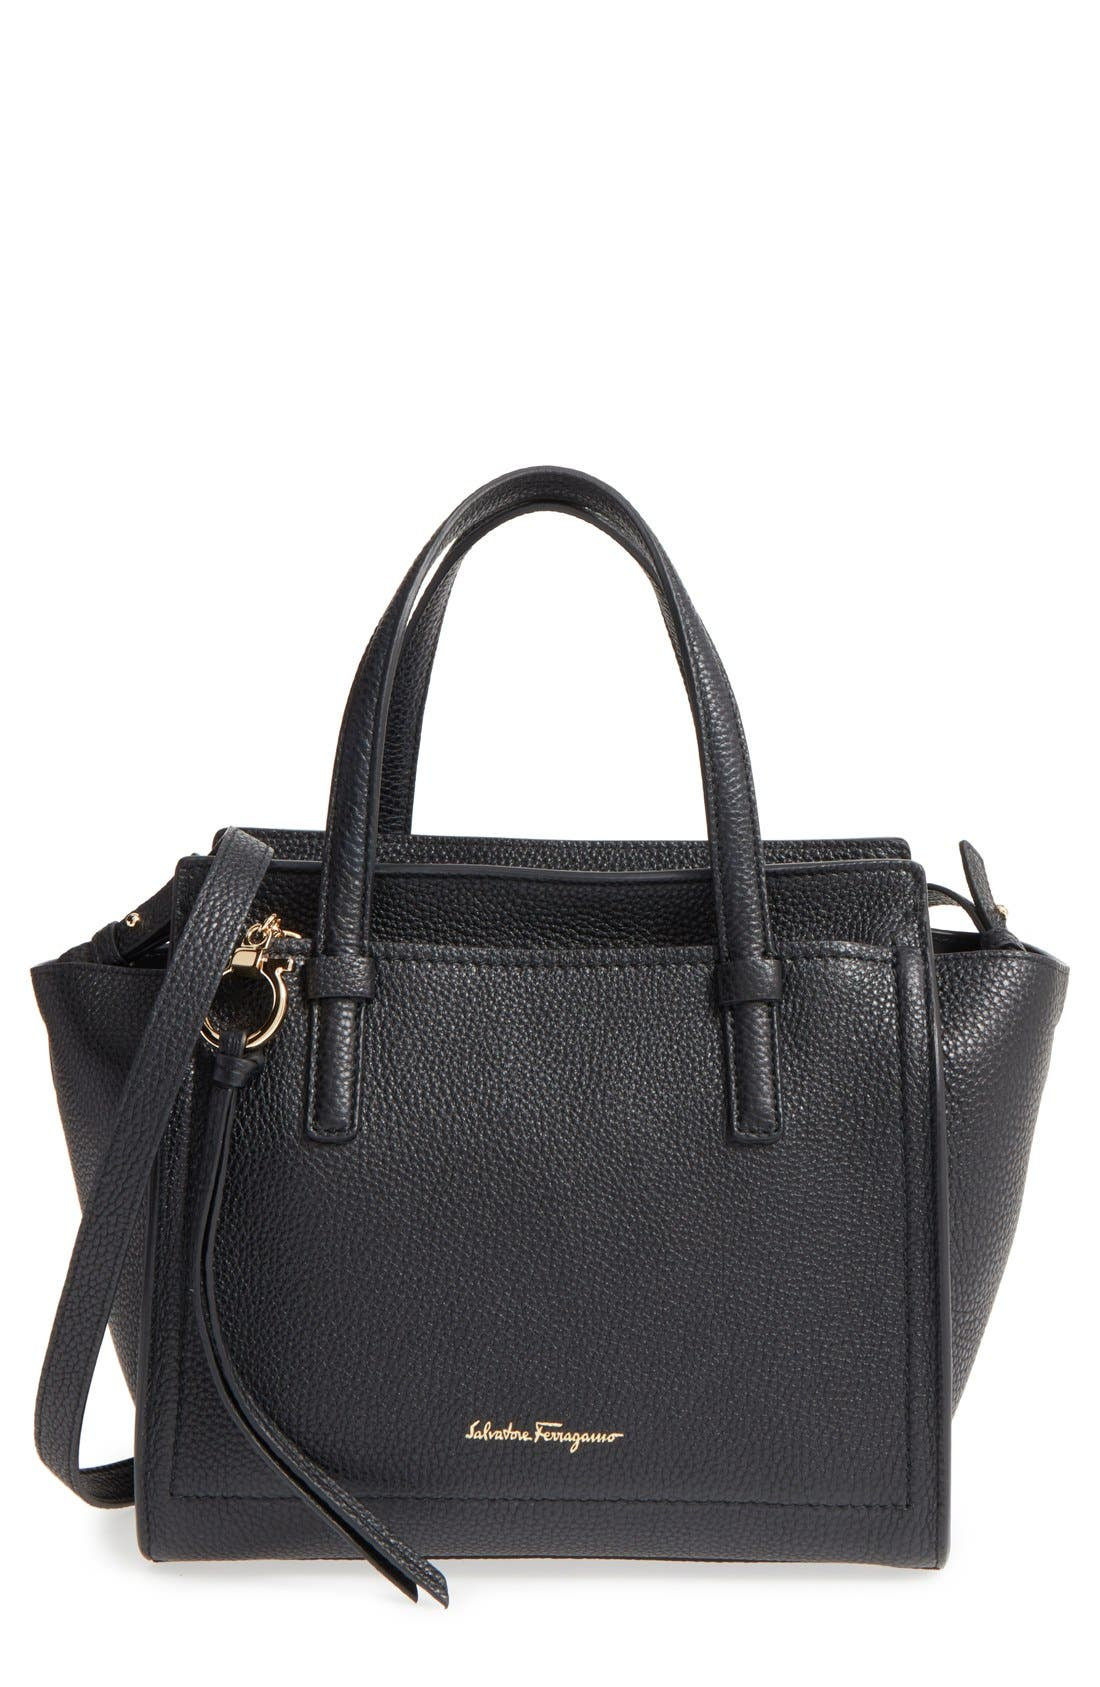 Alternate Image 1 Selected - Salvatore Ferragamo 'Small Amy' Tote